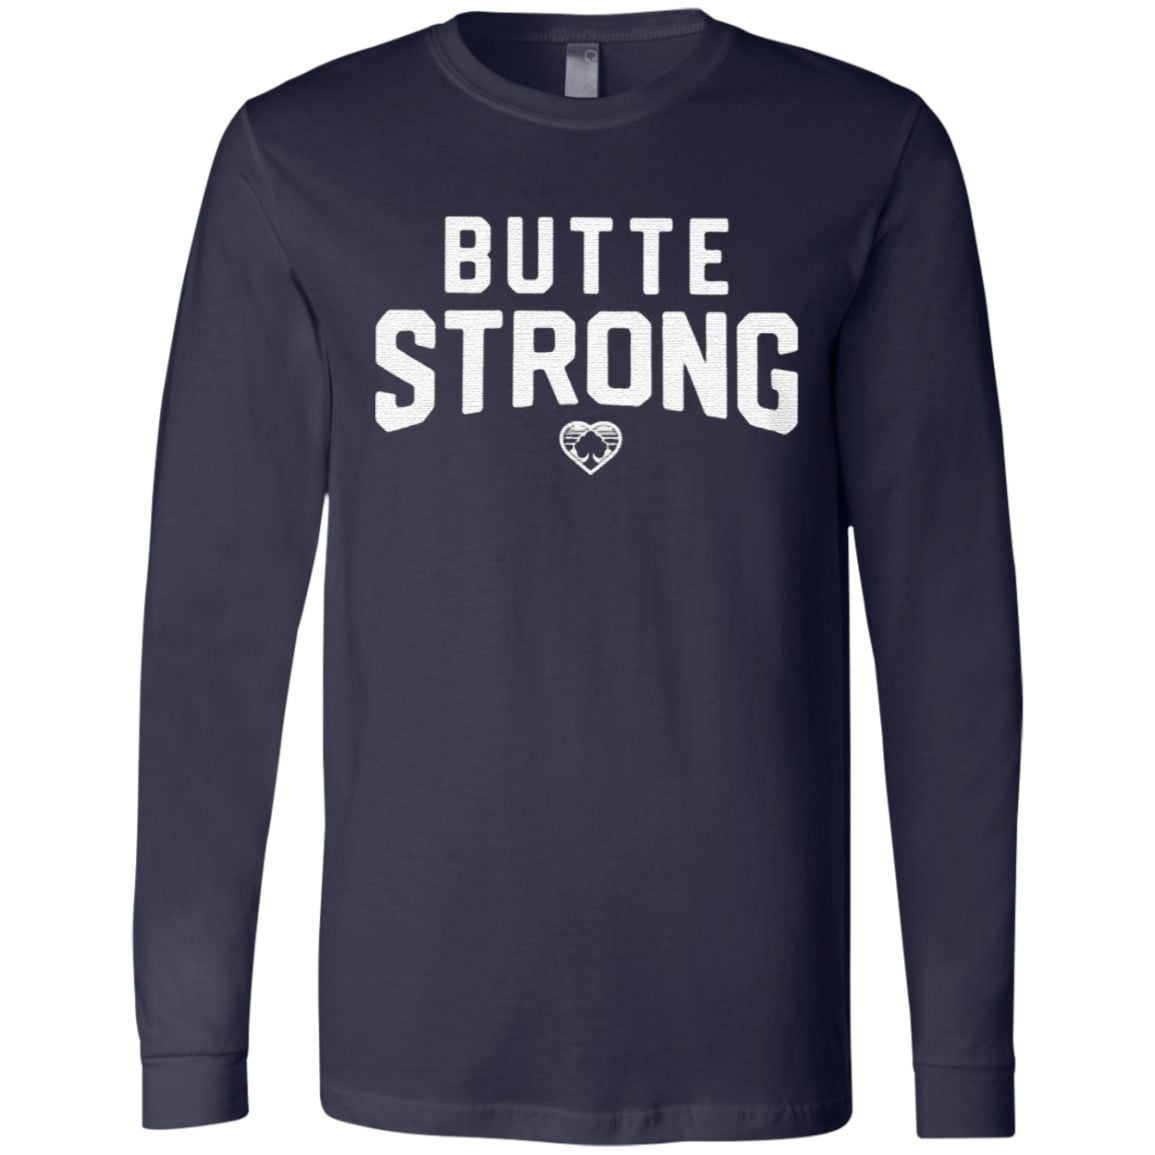 butte strong tshirt